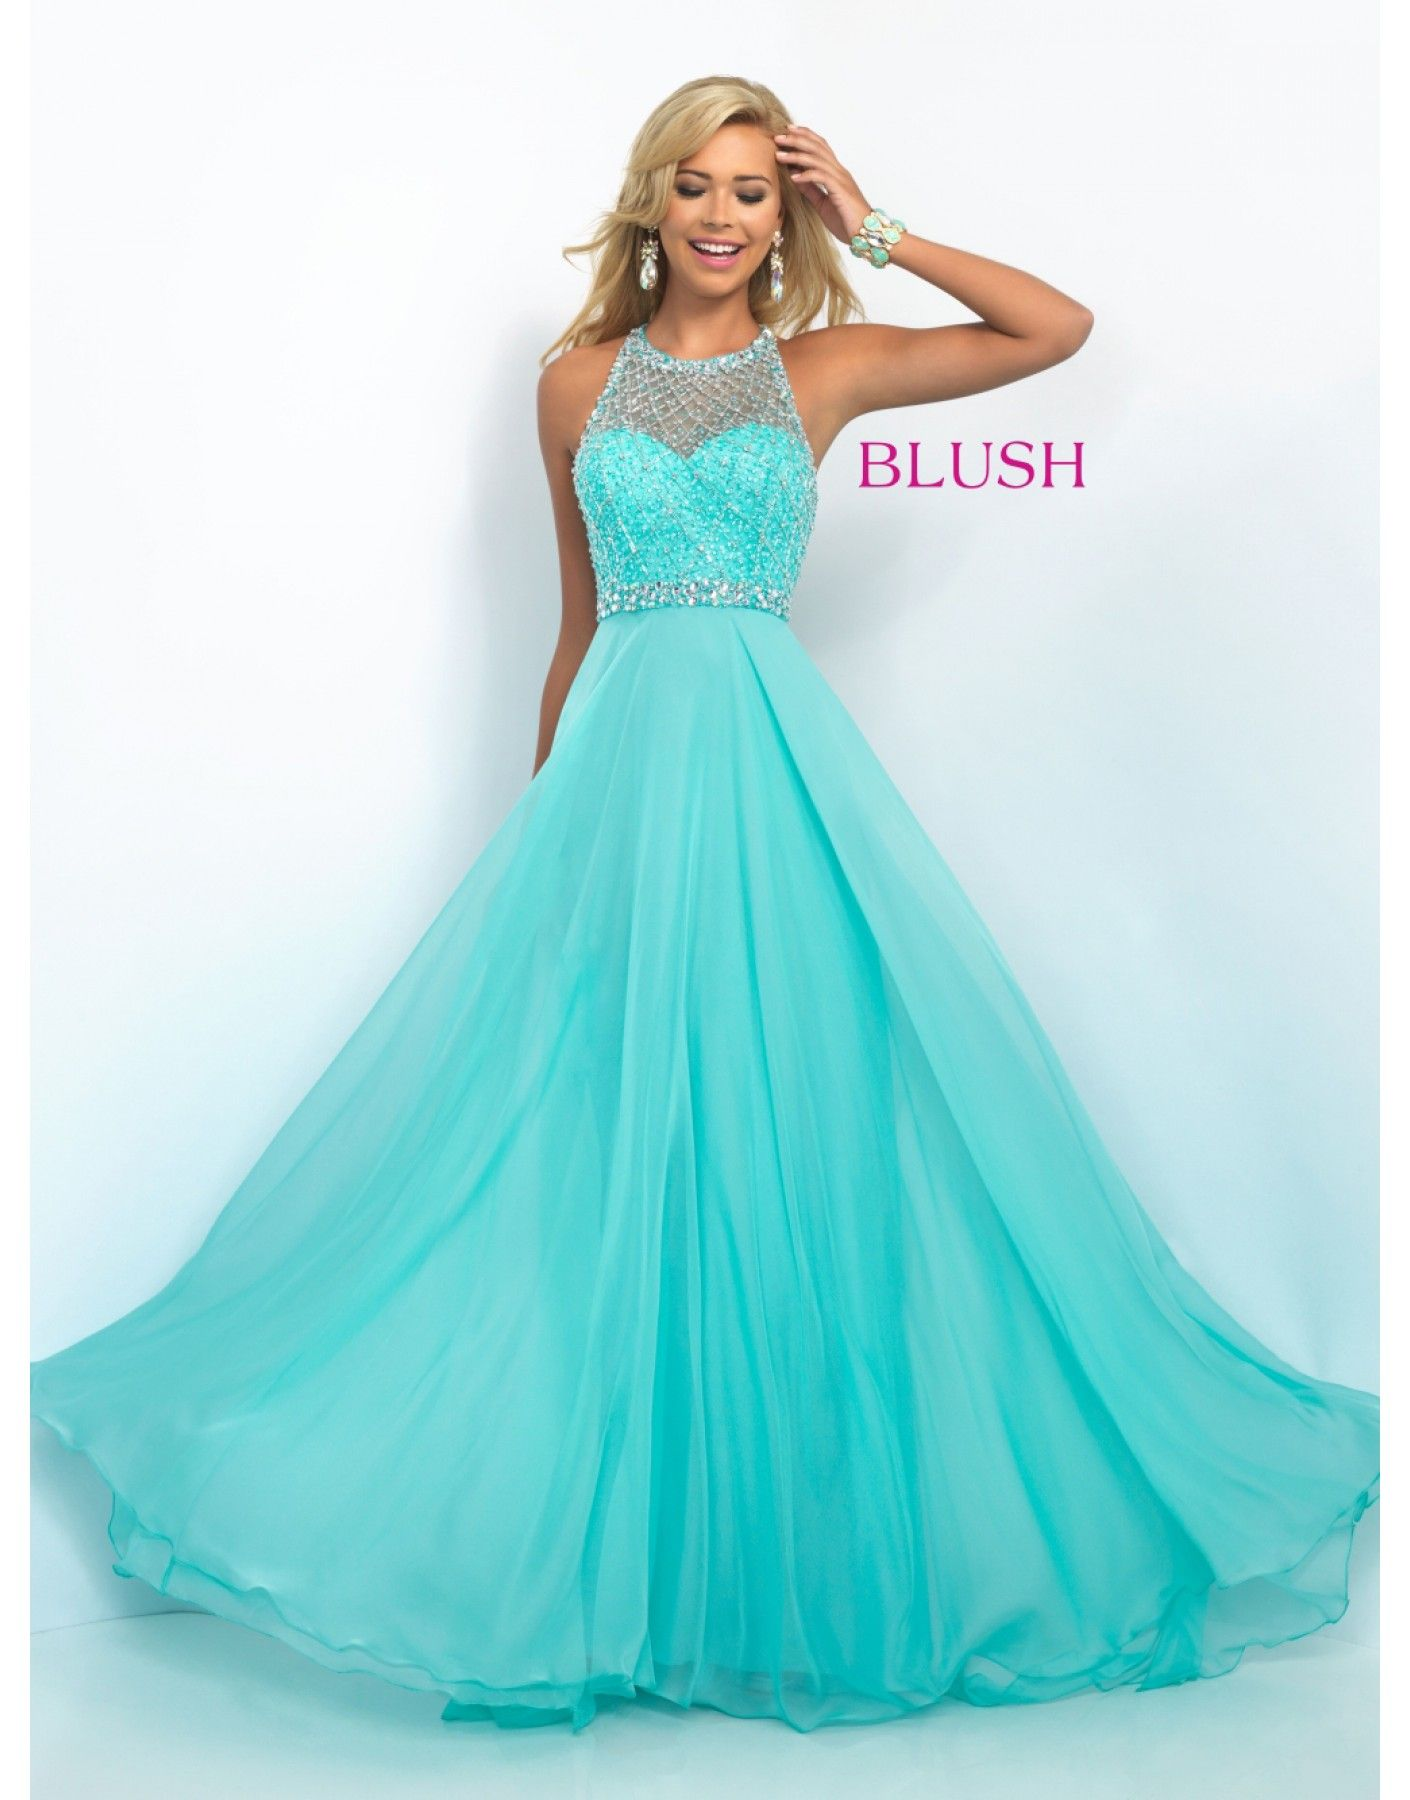 TBdress Prom Dresses Archives | Prom, Cheap prom dresses online and ...